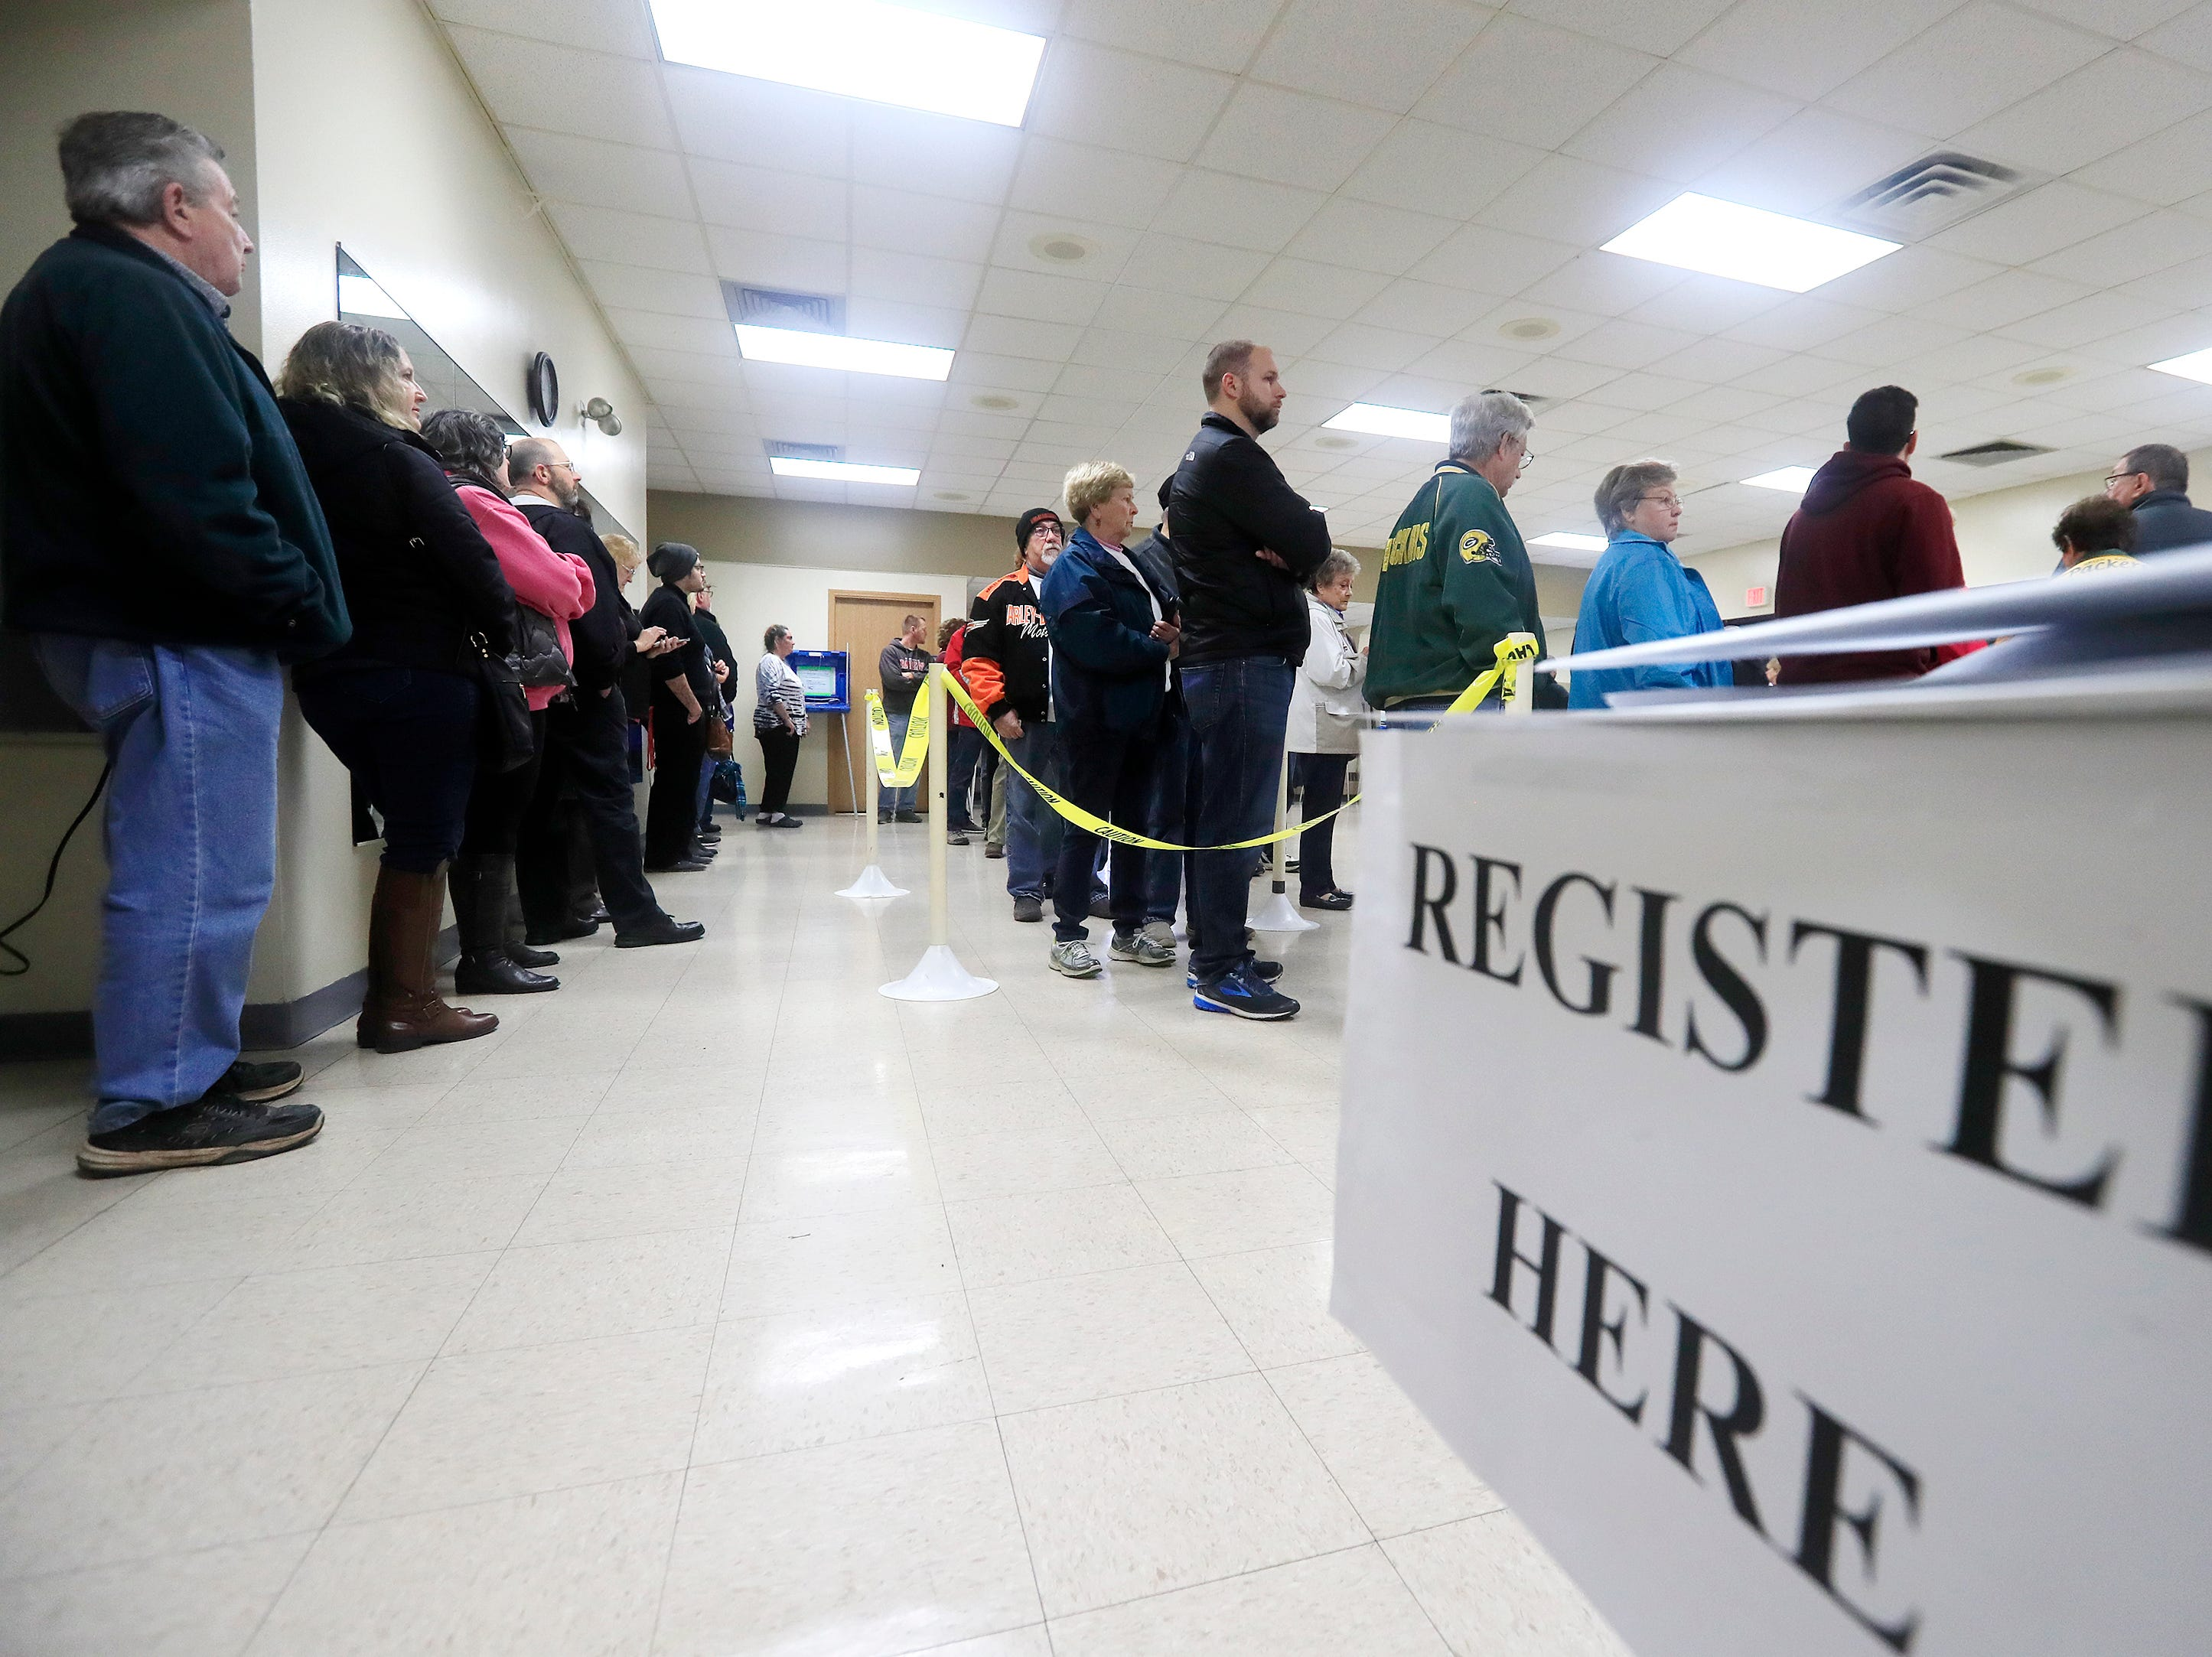 Voters wait in line to cast their ballots at the Bellevue Community Center on Tuesday, November 6, 2018 in Bellevue, Wis.